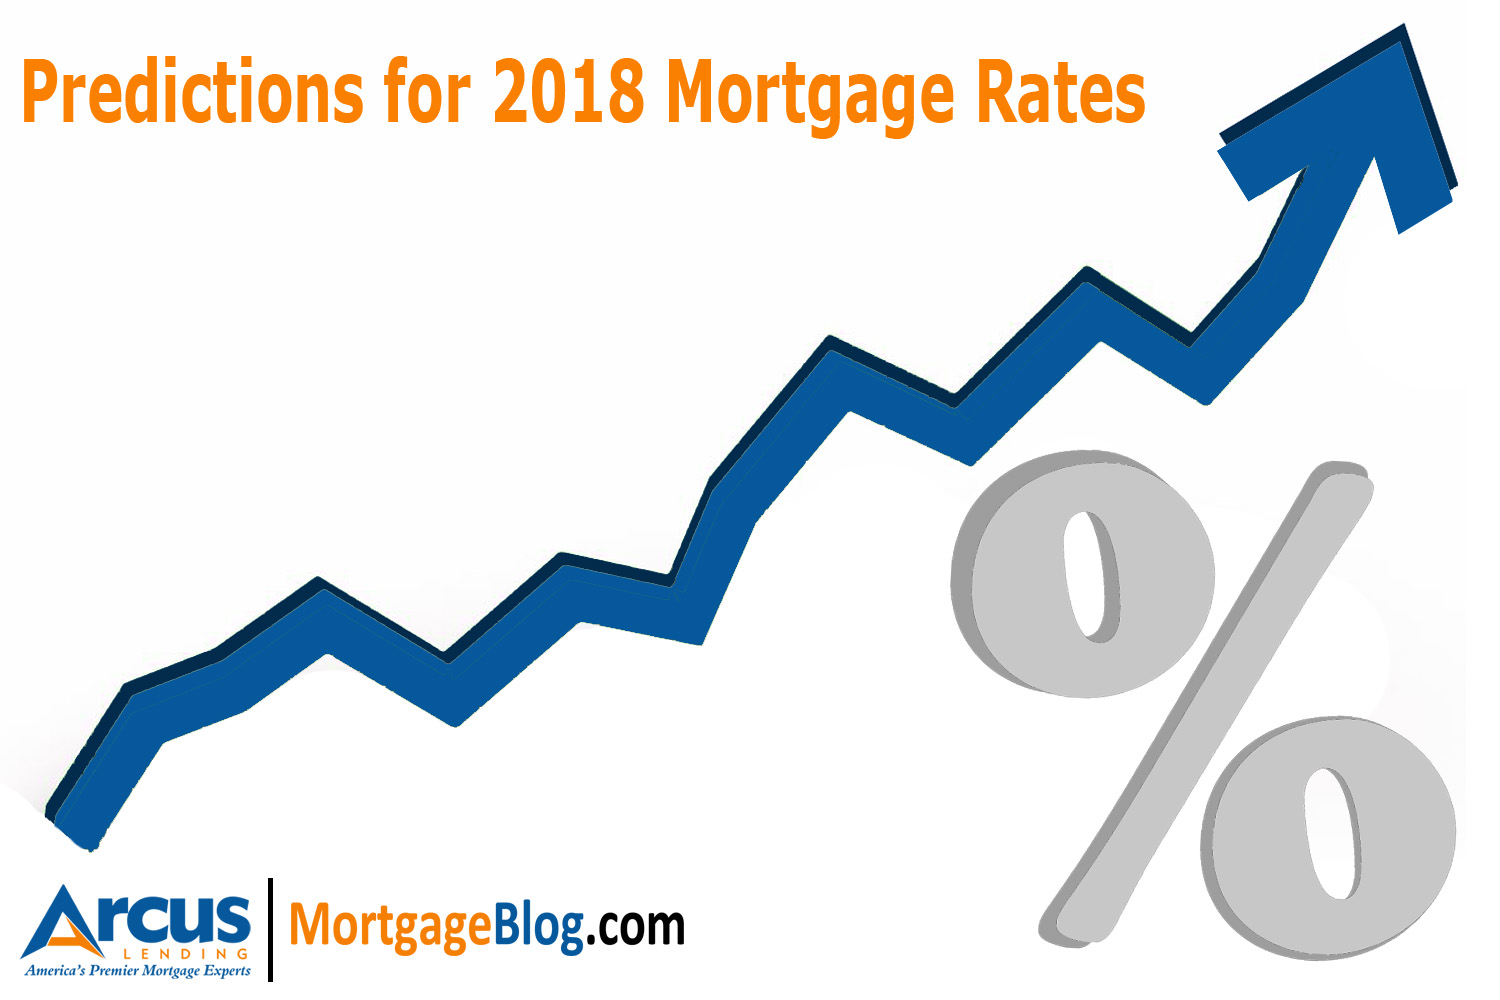 Predictions for 2018 Mortgage Rates